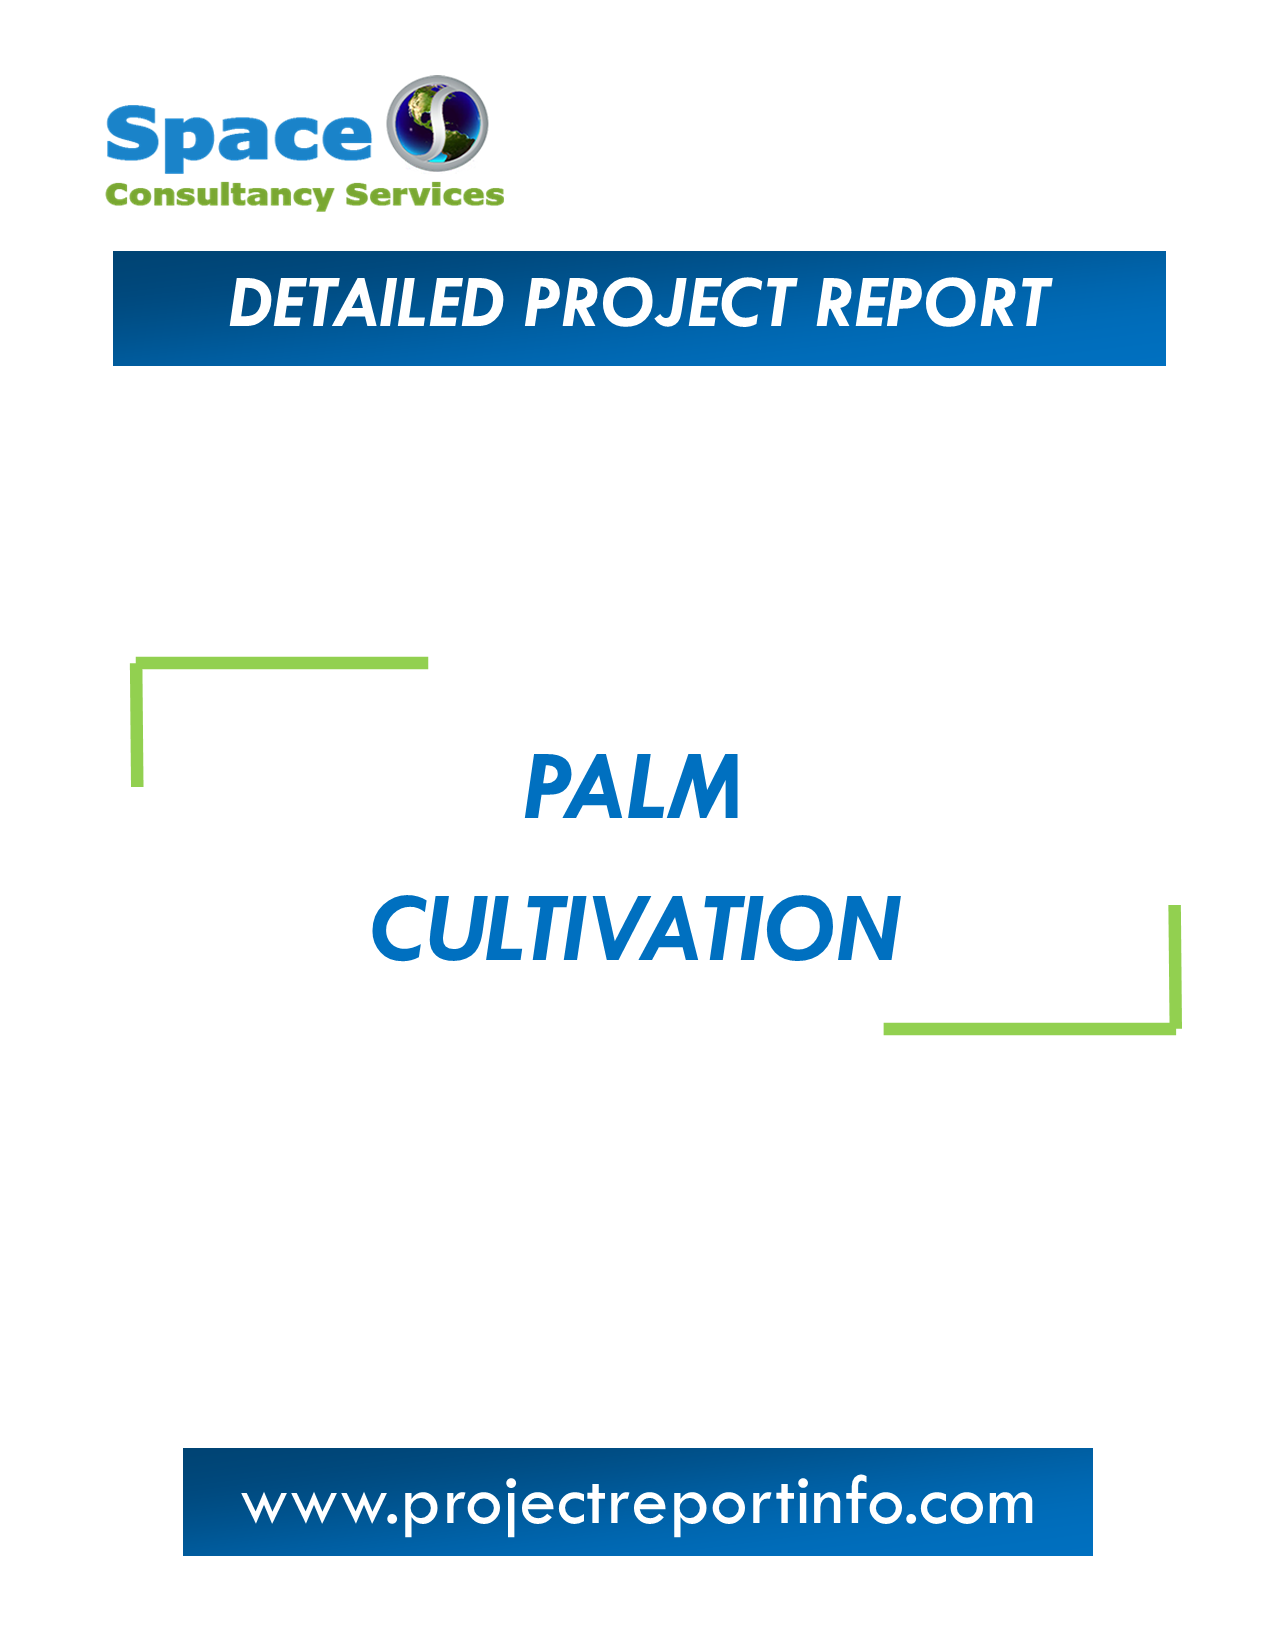 Project Report on Palm Cultivation